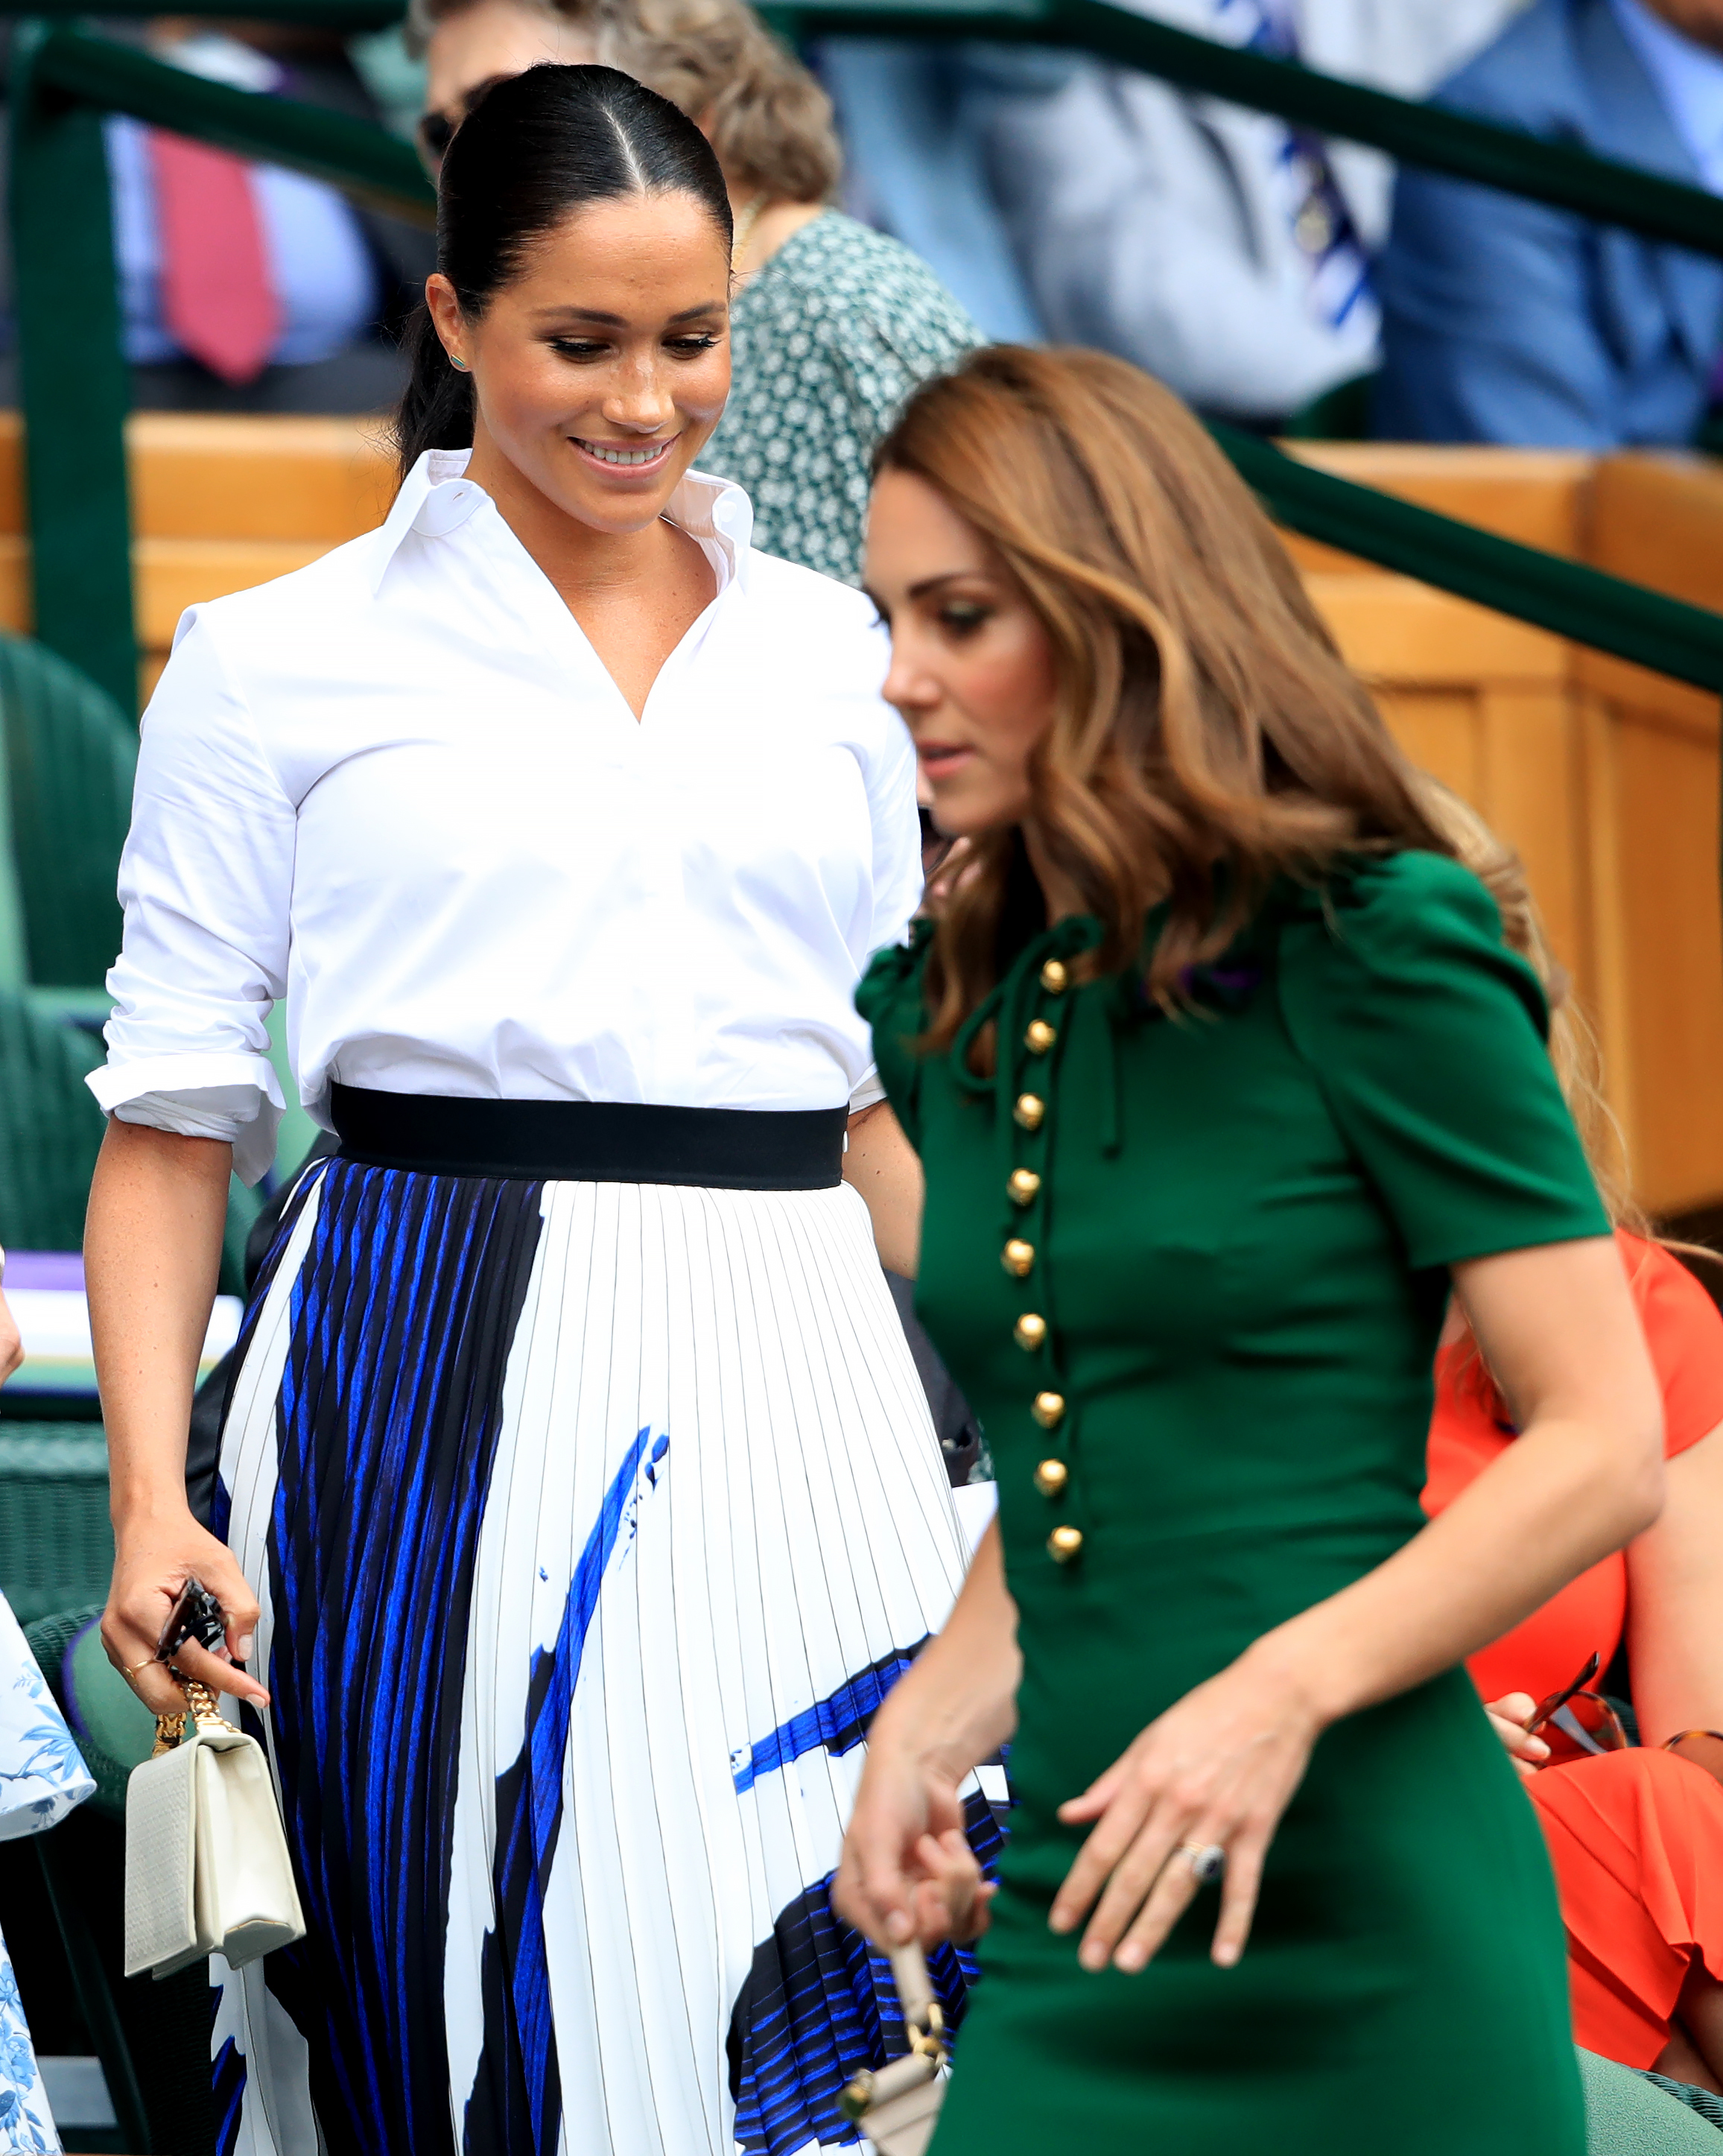 The Duchess of Cambridge and The Duchess of Sussex on day twelve of the Wimbledon Championships at the All England Lawn Tennis and Croquet Club, Wimbledon.